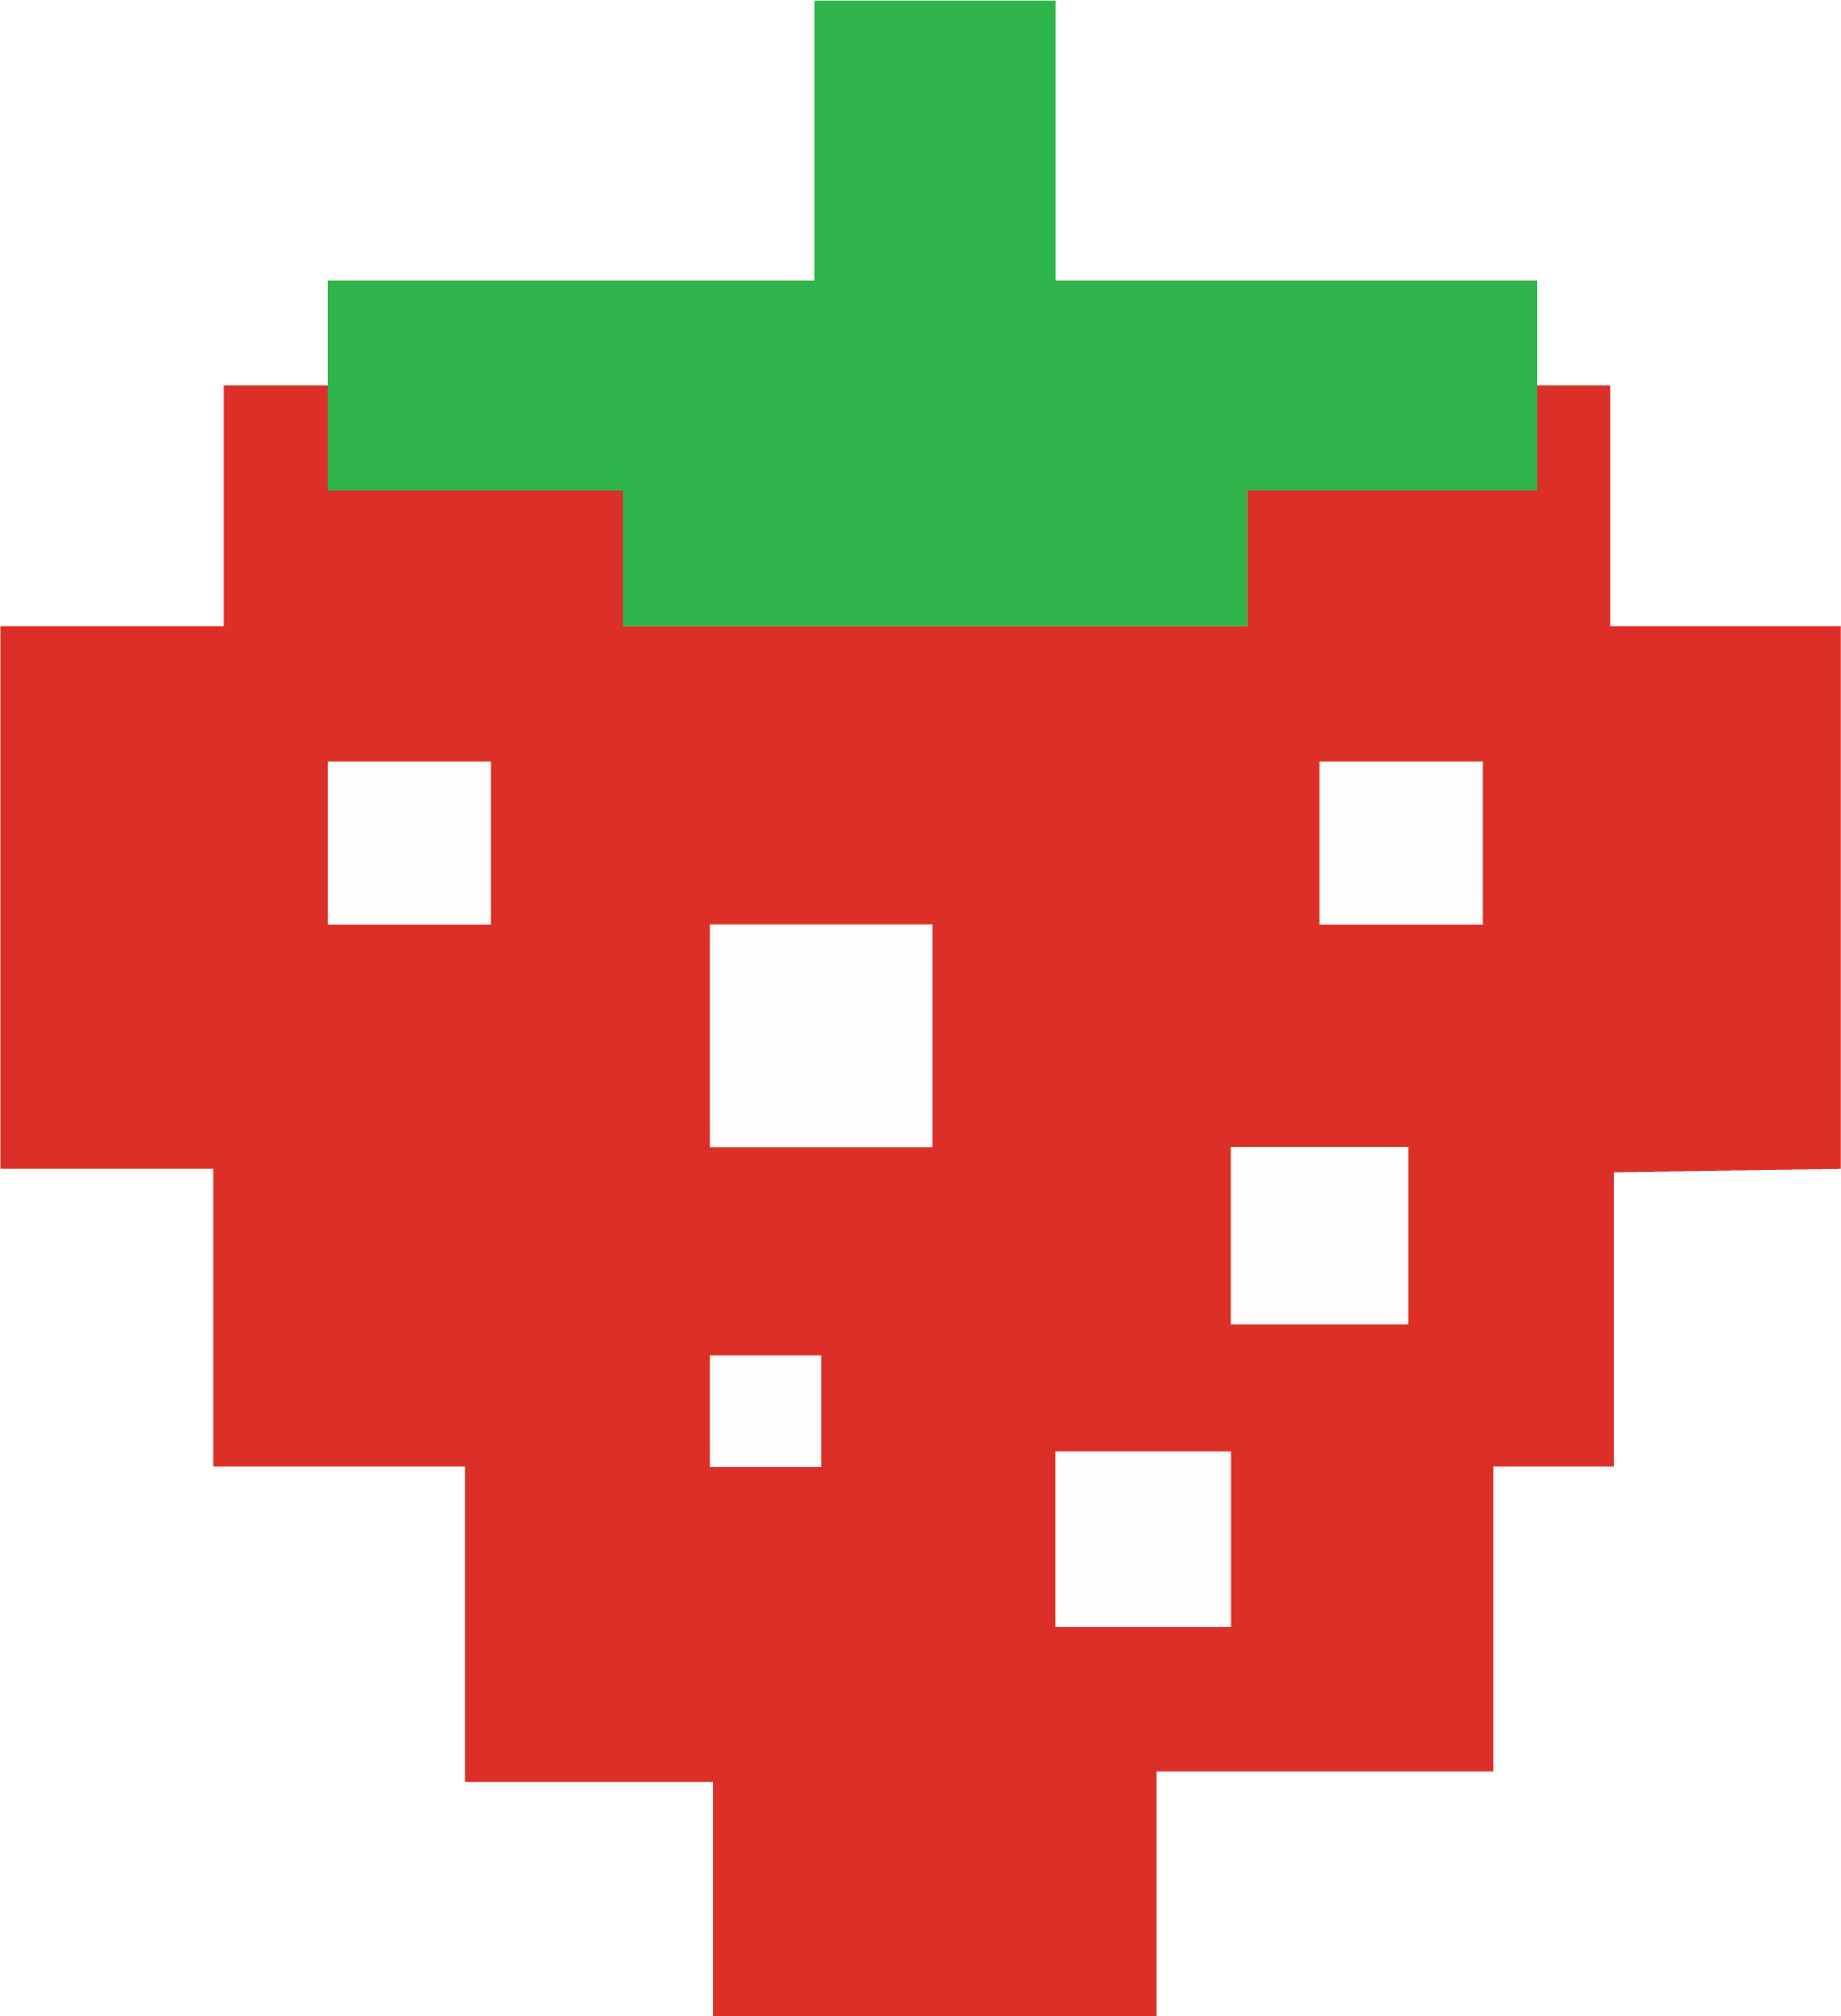 Pacman fruit png. Fruits the assets for